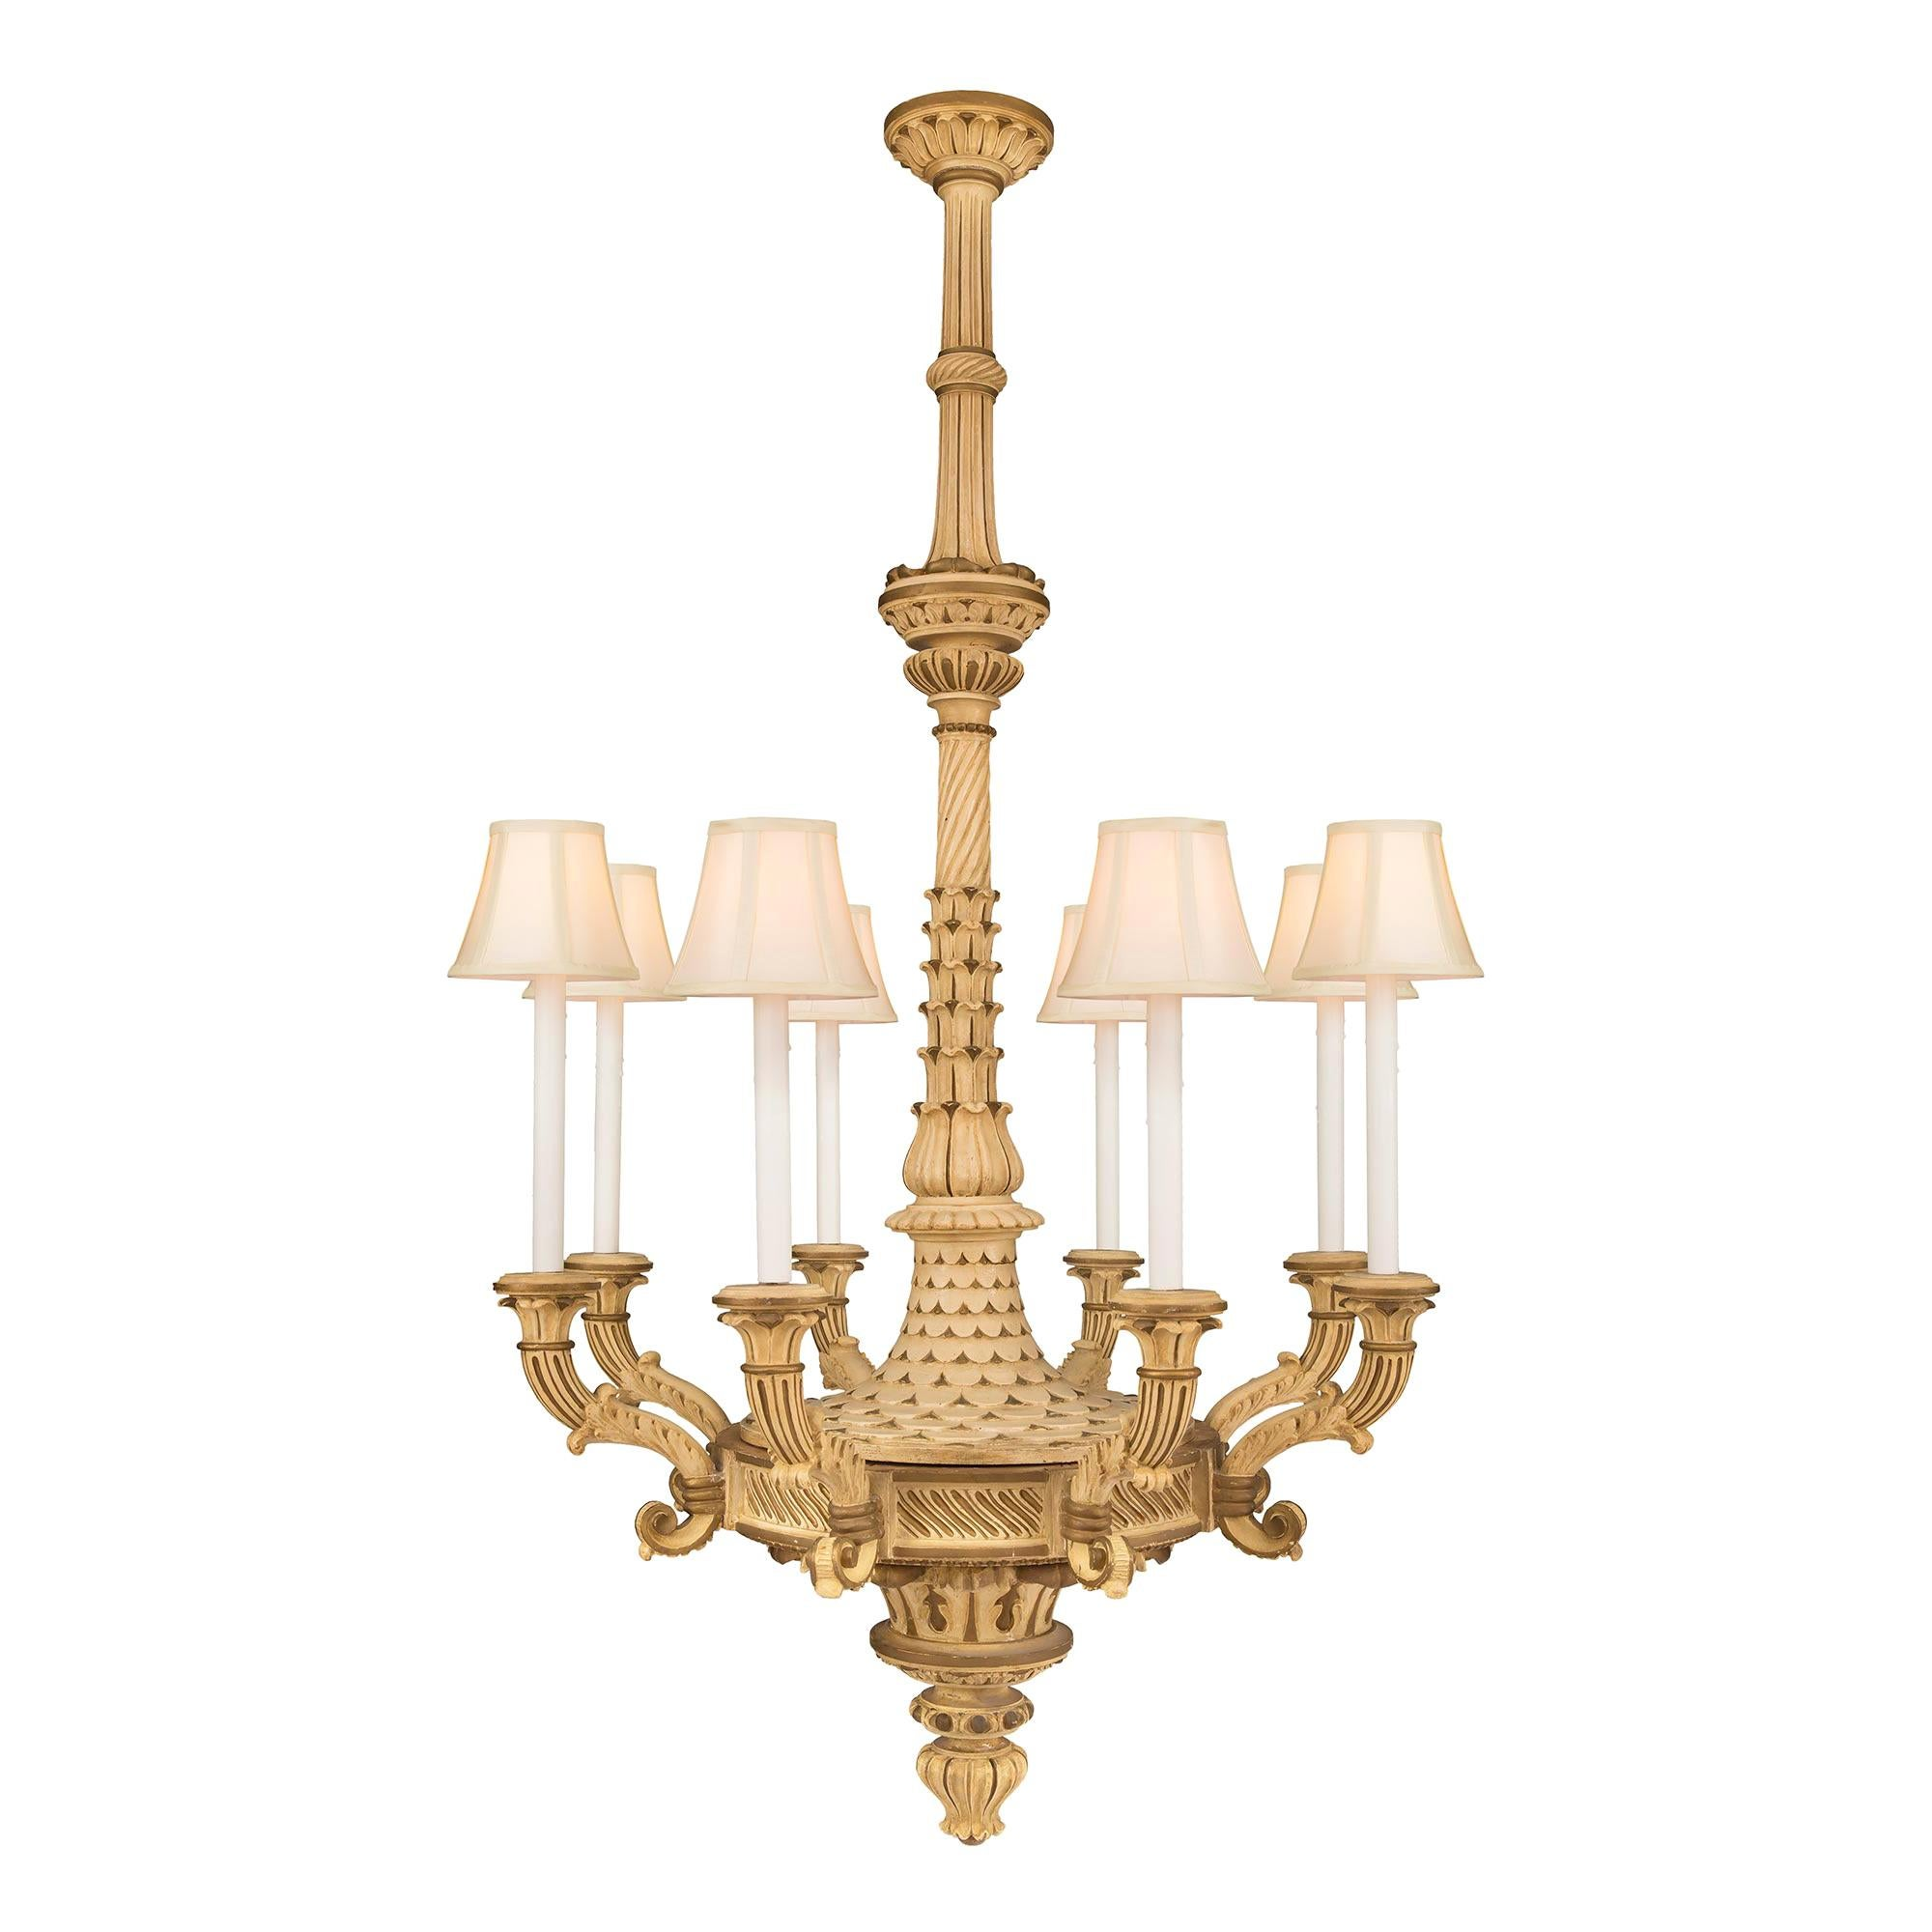 Italian 19th Century Neoclassical Patinated Eight-Arm Chandelier